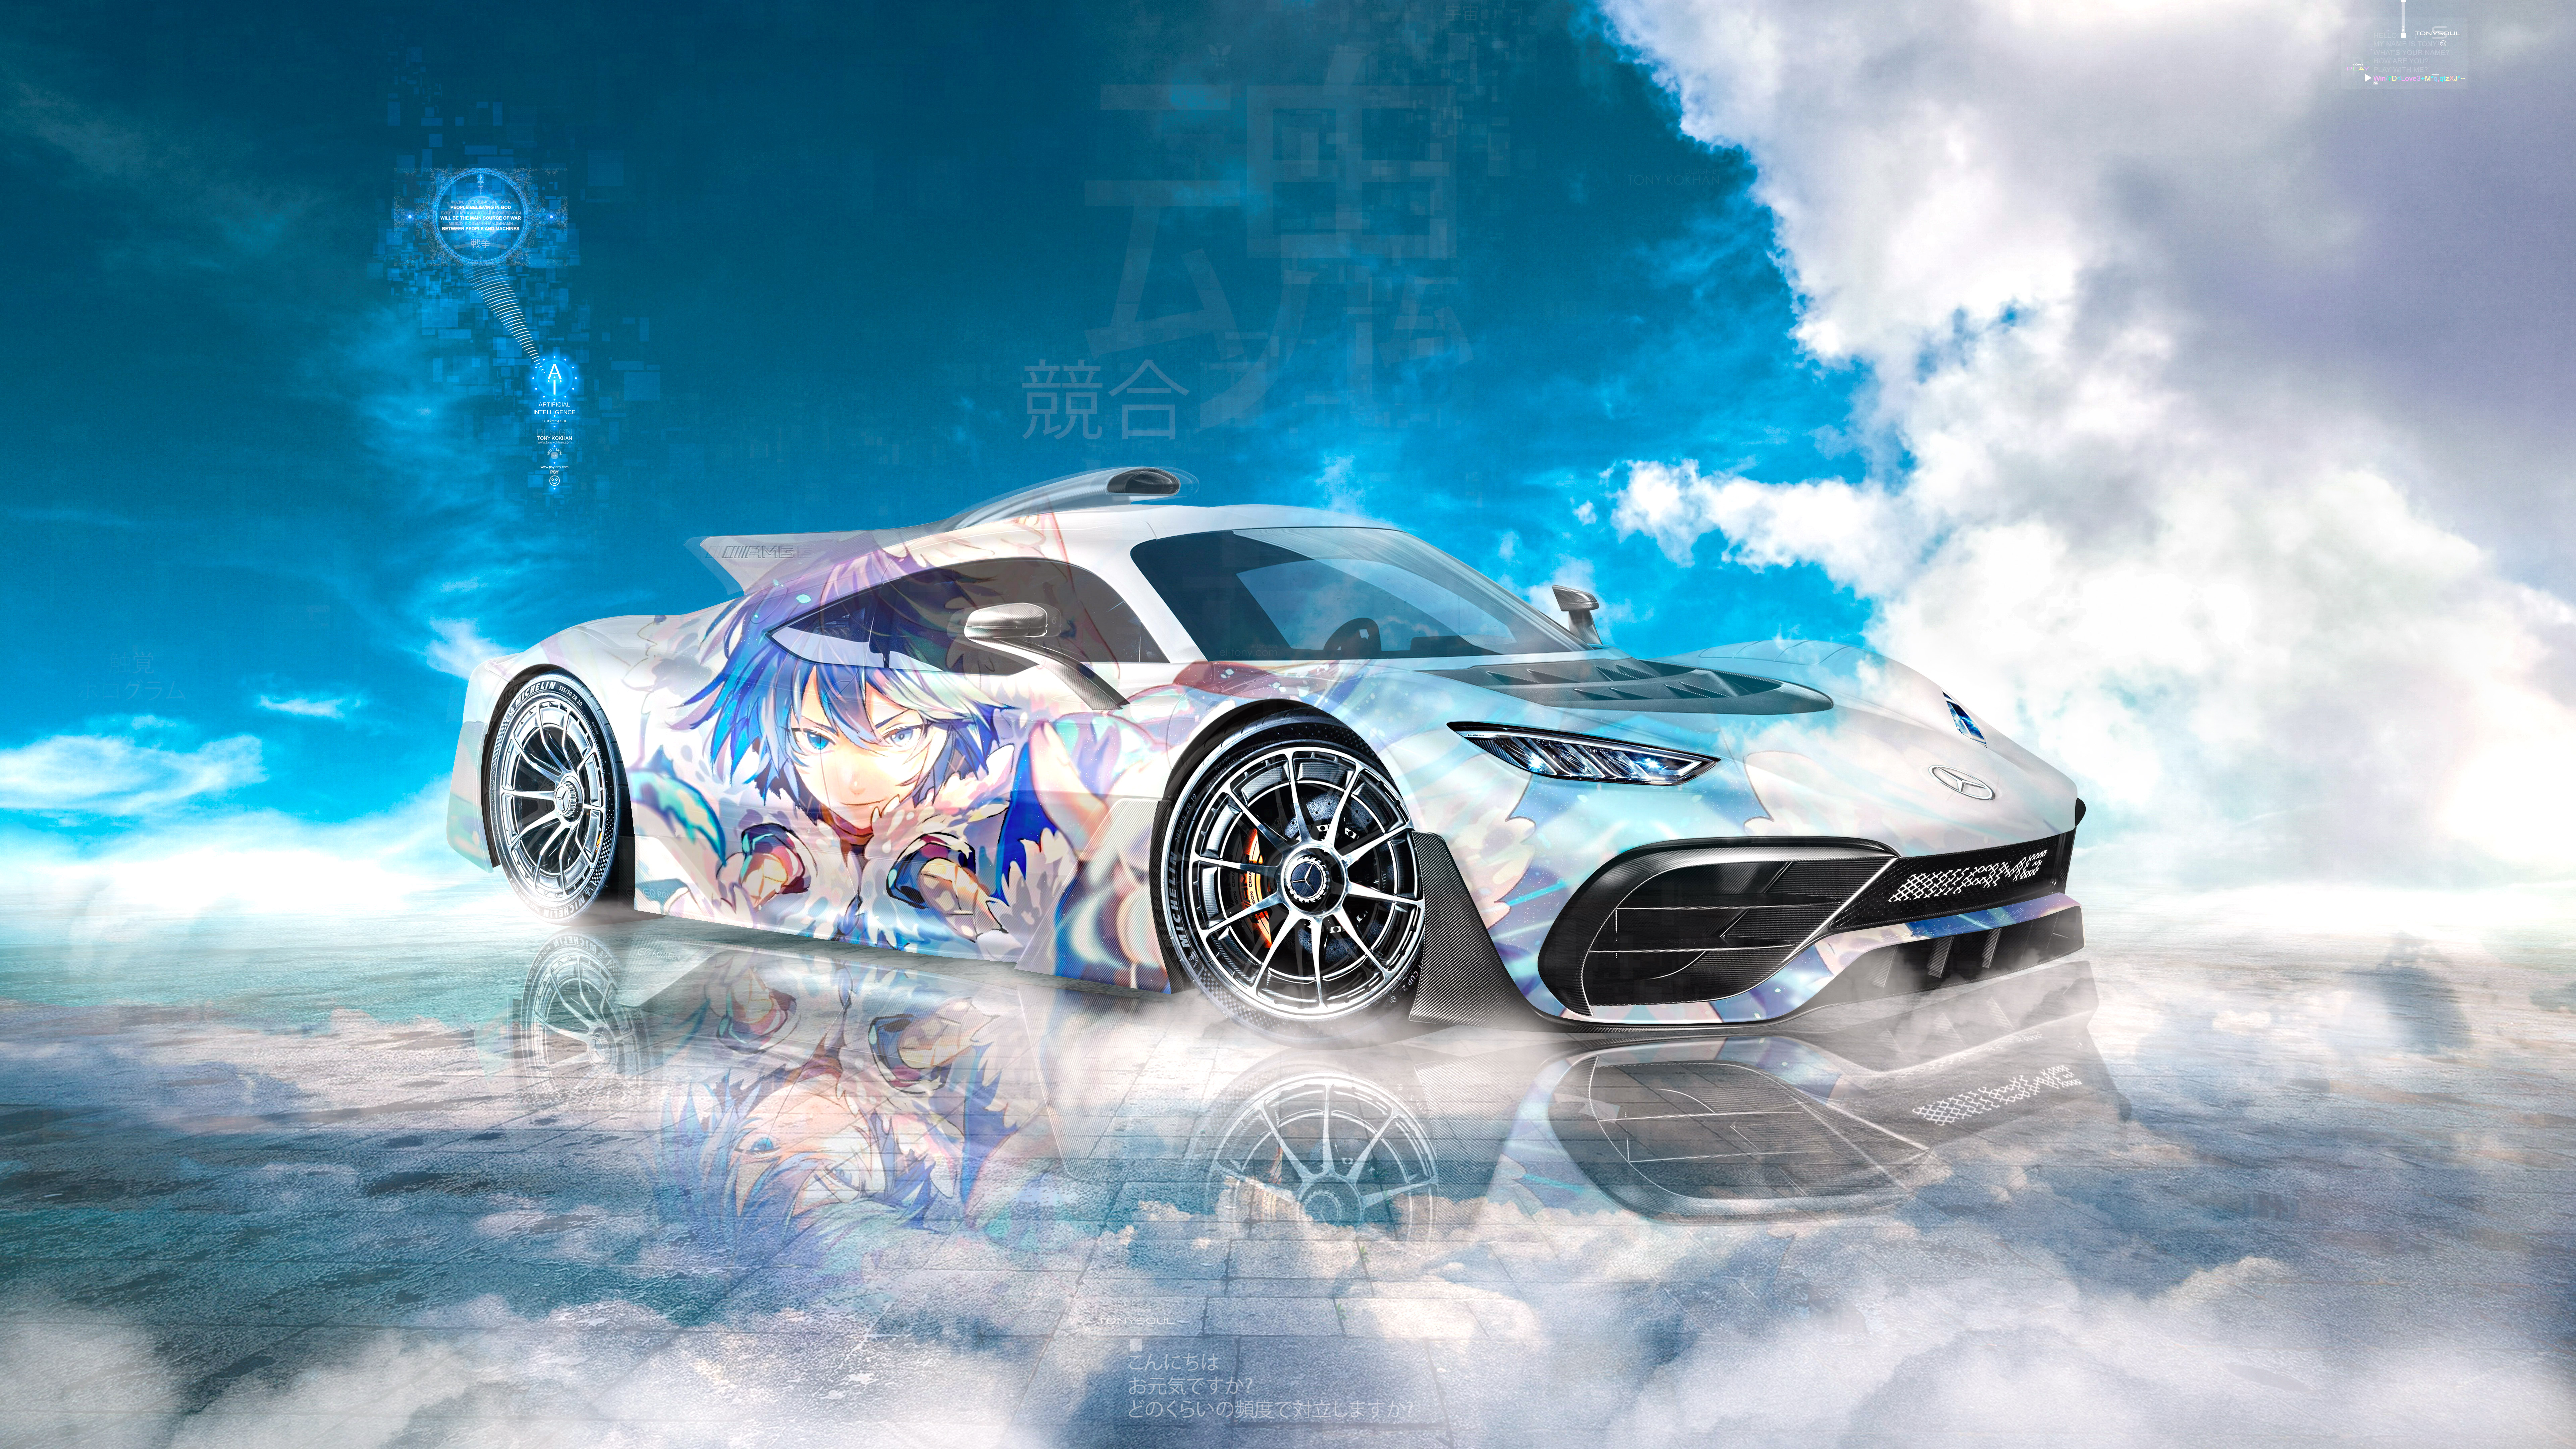 Mercedes-AMG-Project-One-Super-Anime-Boy-Crystal-Conflict-Soul-Sky-Artificial-Intelligence-Main-Source-Of-War-Art-Car-2021-Multicolors-8K-Wallpapers-by-Tony-Kokhan-www.el-tony.com-image